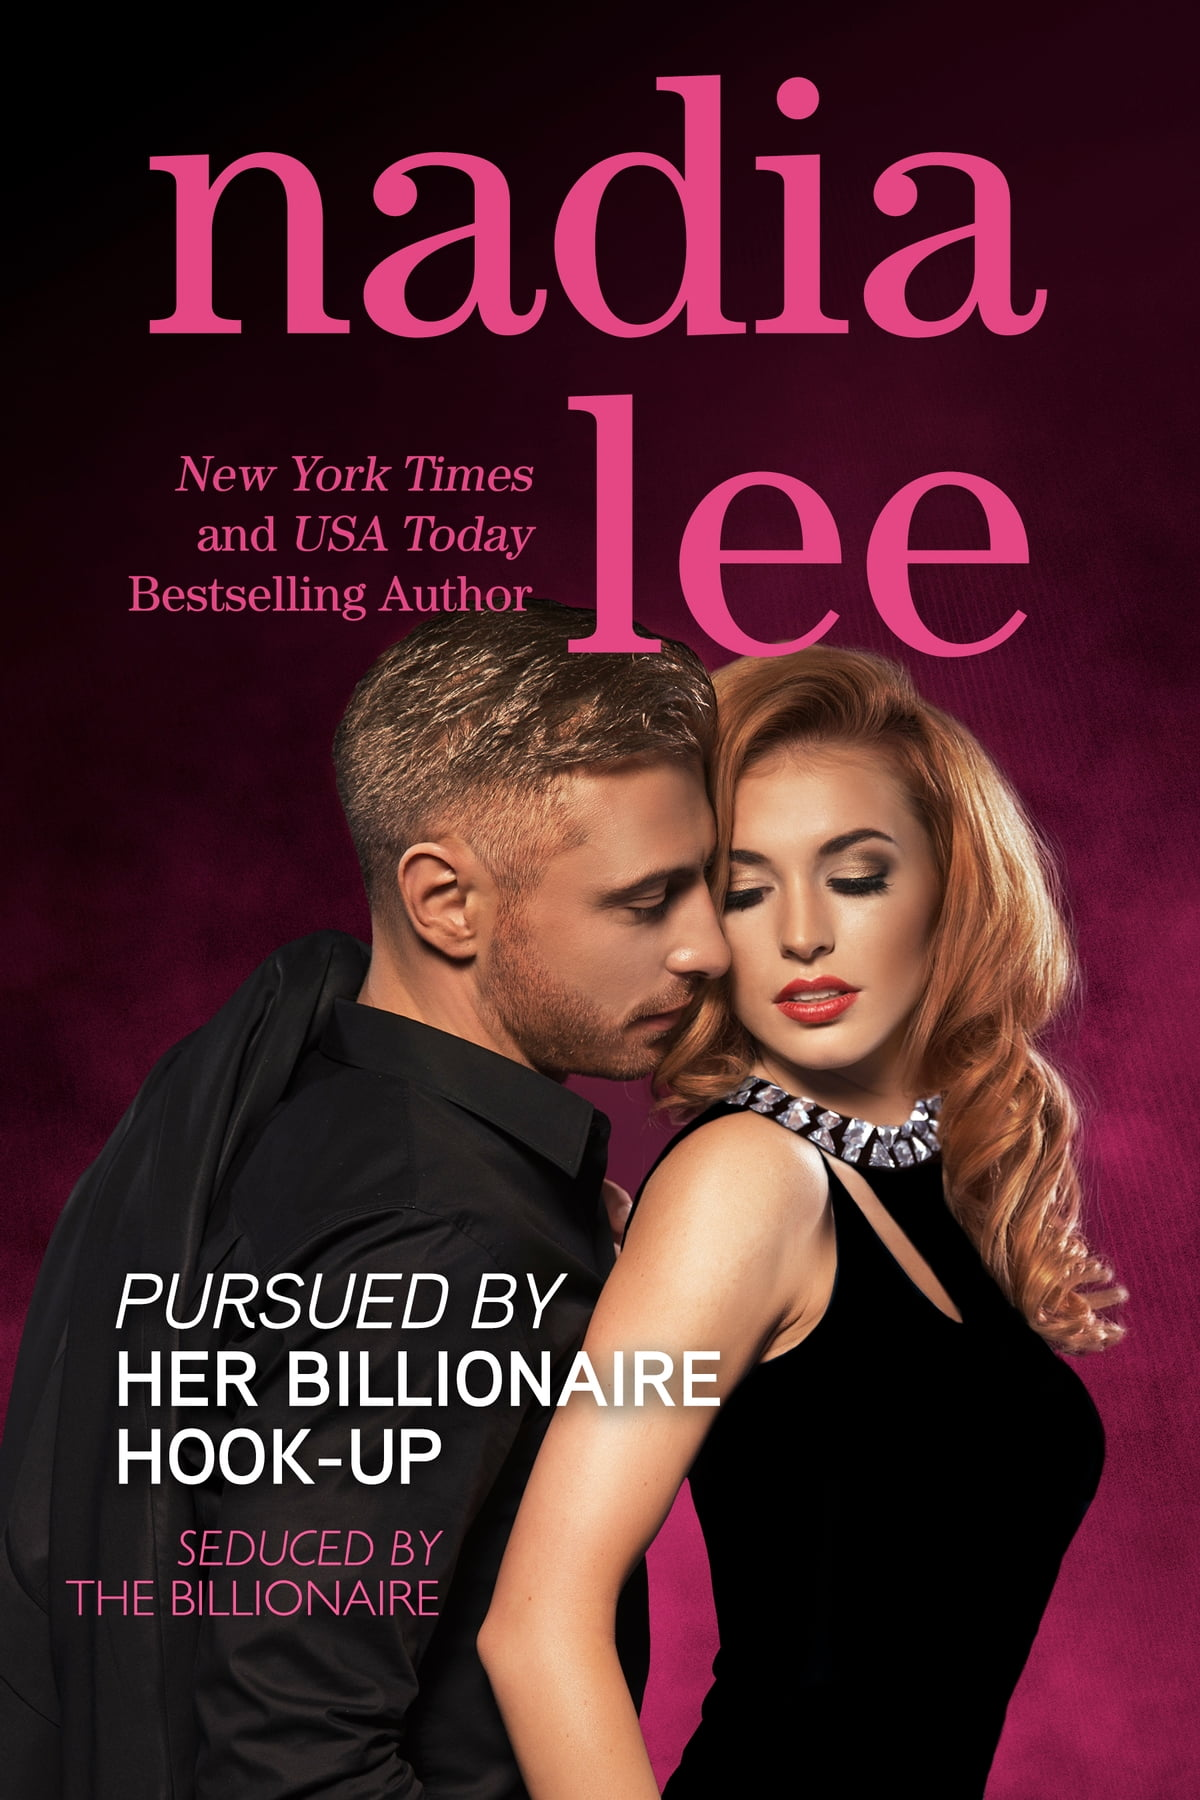 One night with the billionaire book two by cassie cross ebook pursued by her billionaire hook up seduced by the billionaire book 2 ebook fandeluxe Image collections